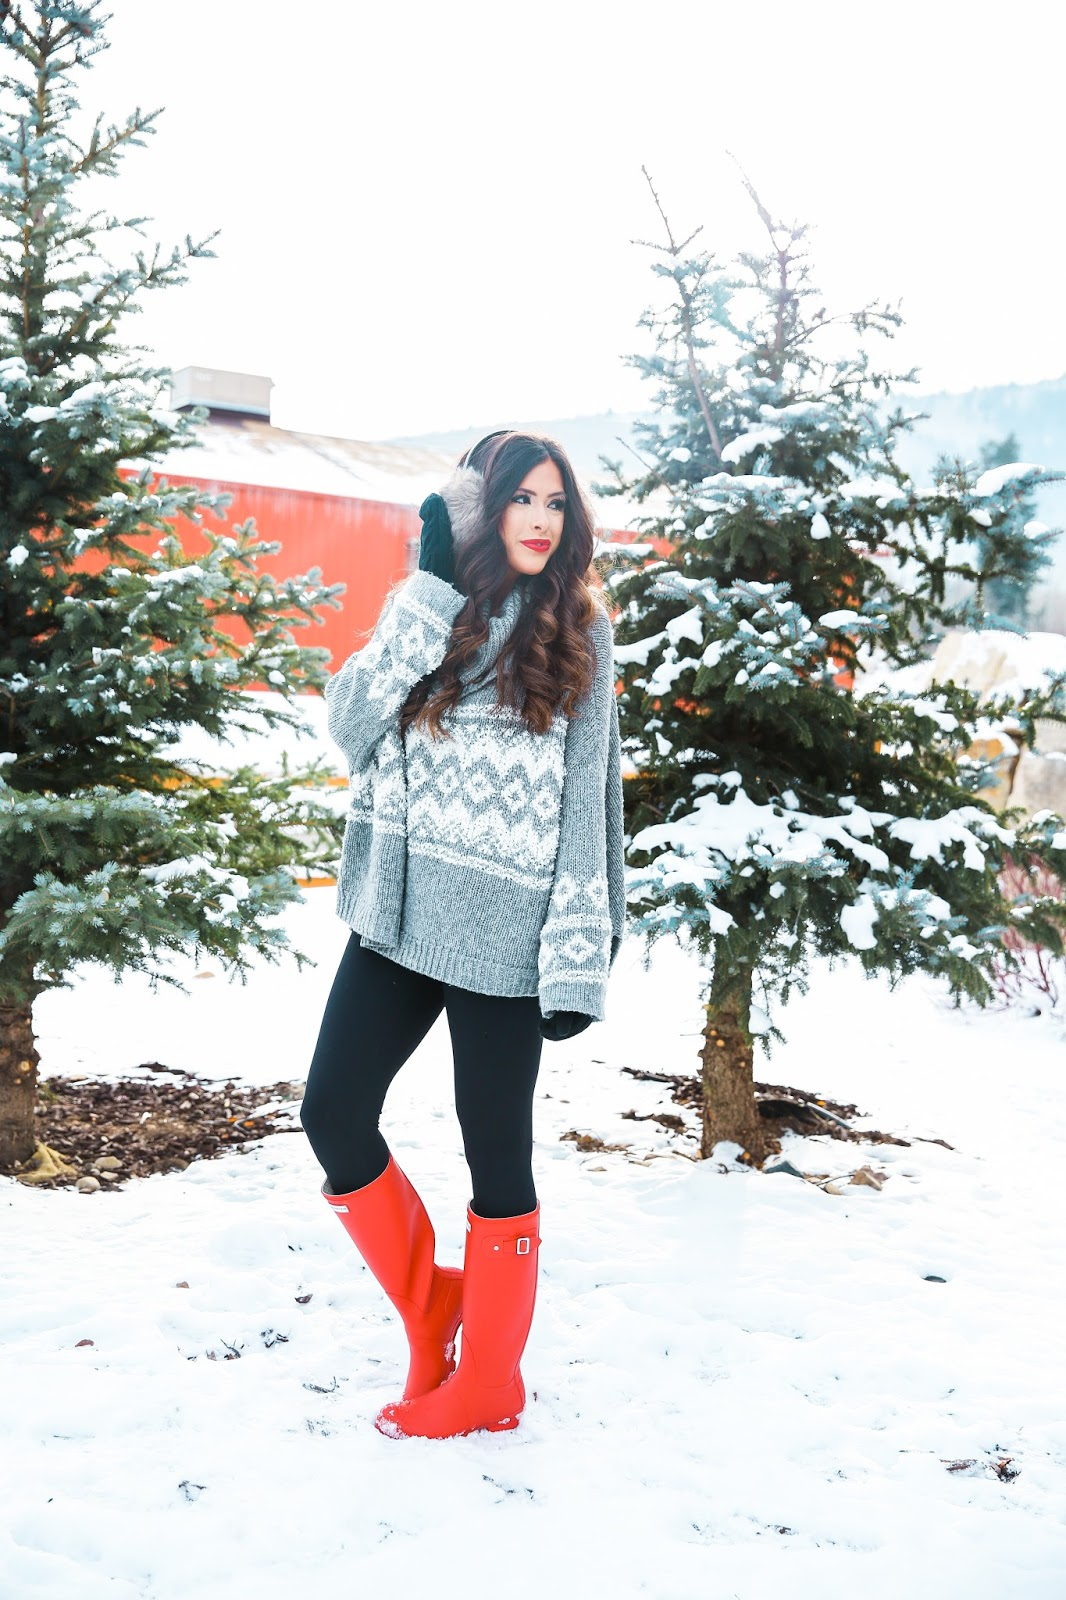 winter fashion pinterest, cute winter outfits in snow pinterest, fashion winter outfit idea, red hunter boots, red matte hunter boots, zella leggings review, free people grey oversized sweater, fuzzy earmuffs, parkhurst mittens, emily gemma, the sweetest thing blog, what to wear for a snow day, park city utah, winter fashion